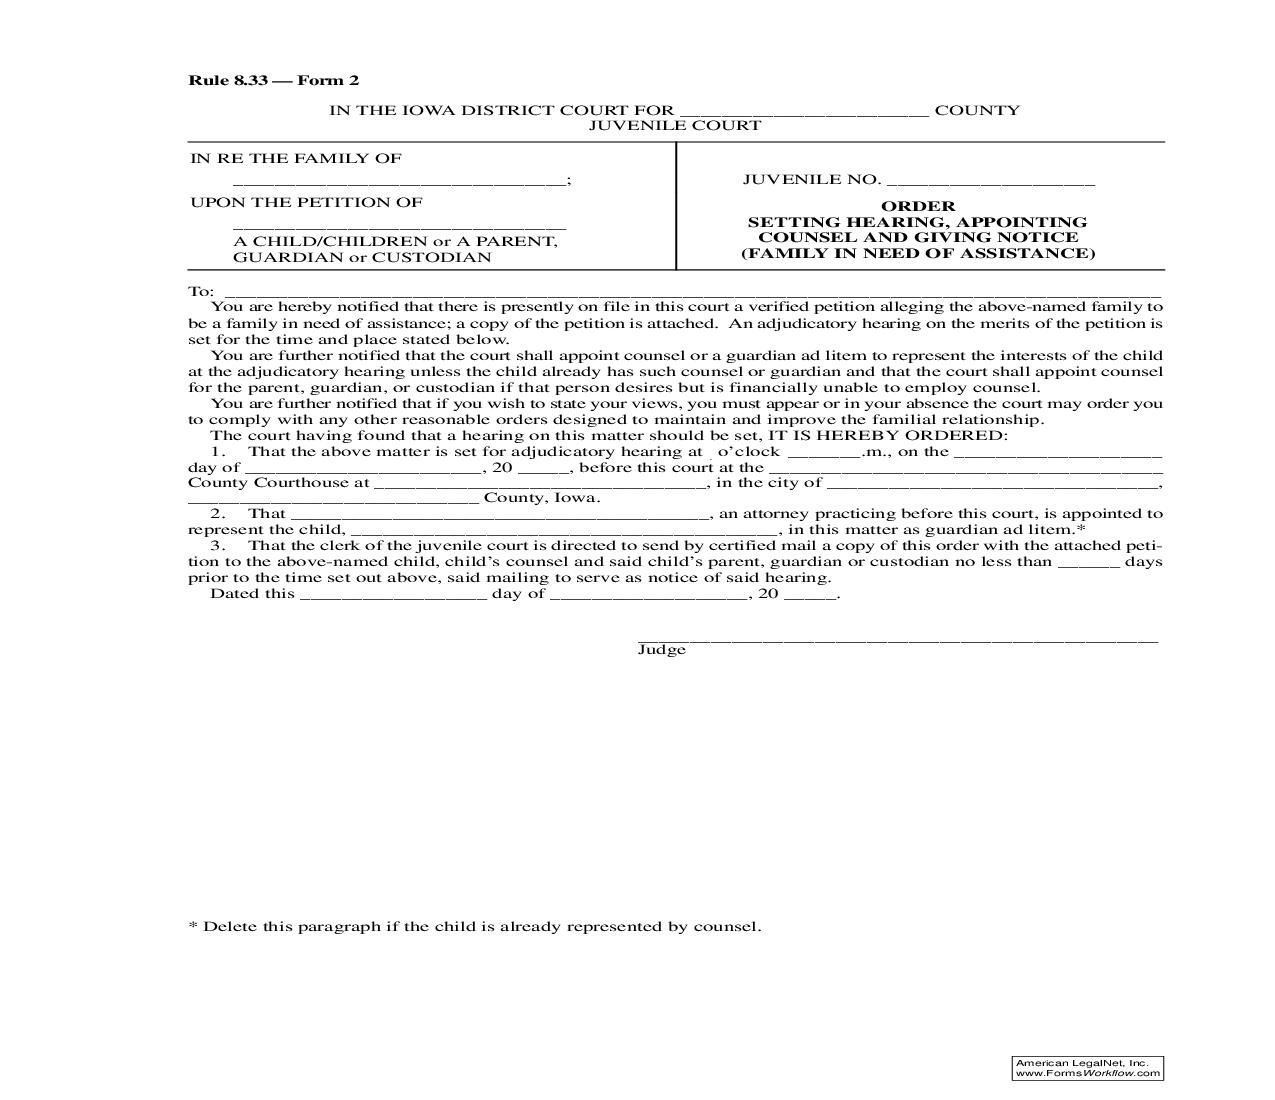 Order Setting Hearing, Appointing Counsel And Giving Notice (Family In Need Of Assistance) {Rule 8.33 Form 2} | Pdf Fpdf Doc Docx | Iowa